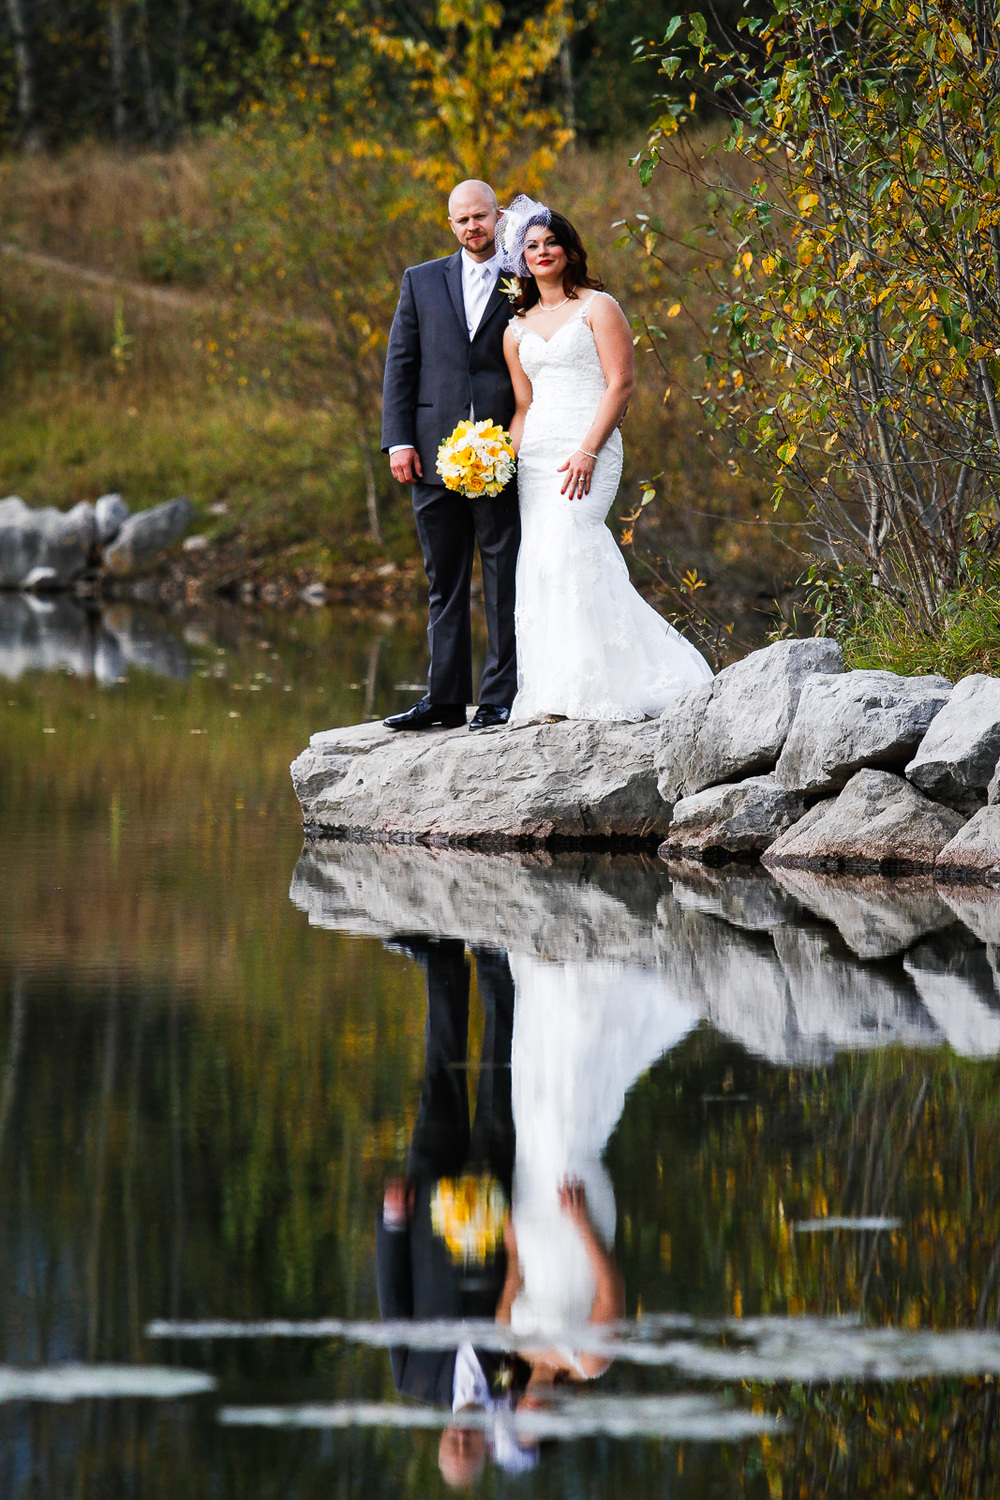 Wedding Portfolio-Nick Nault-39.jpg